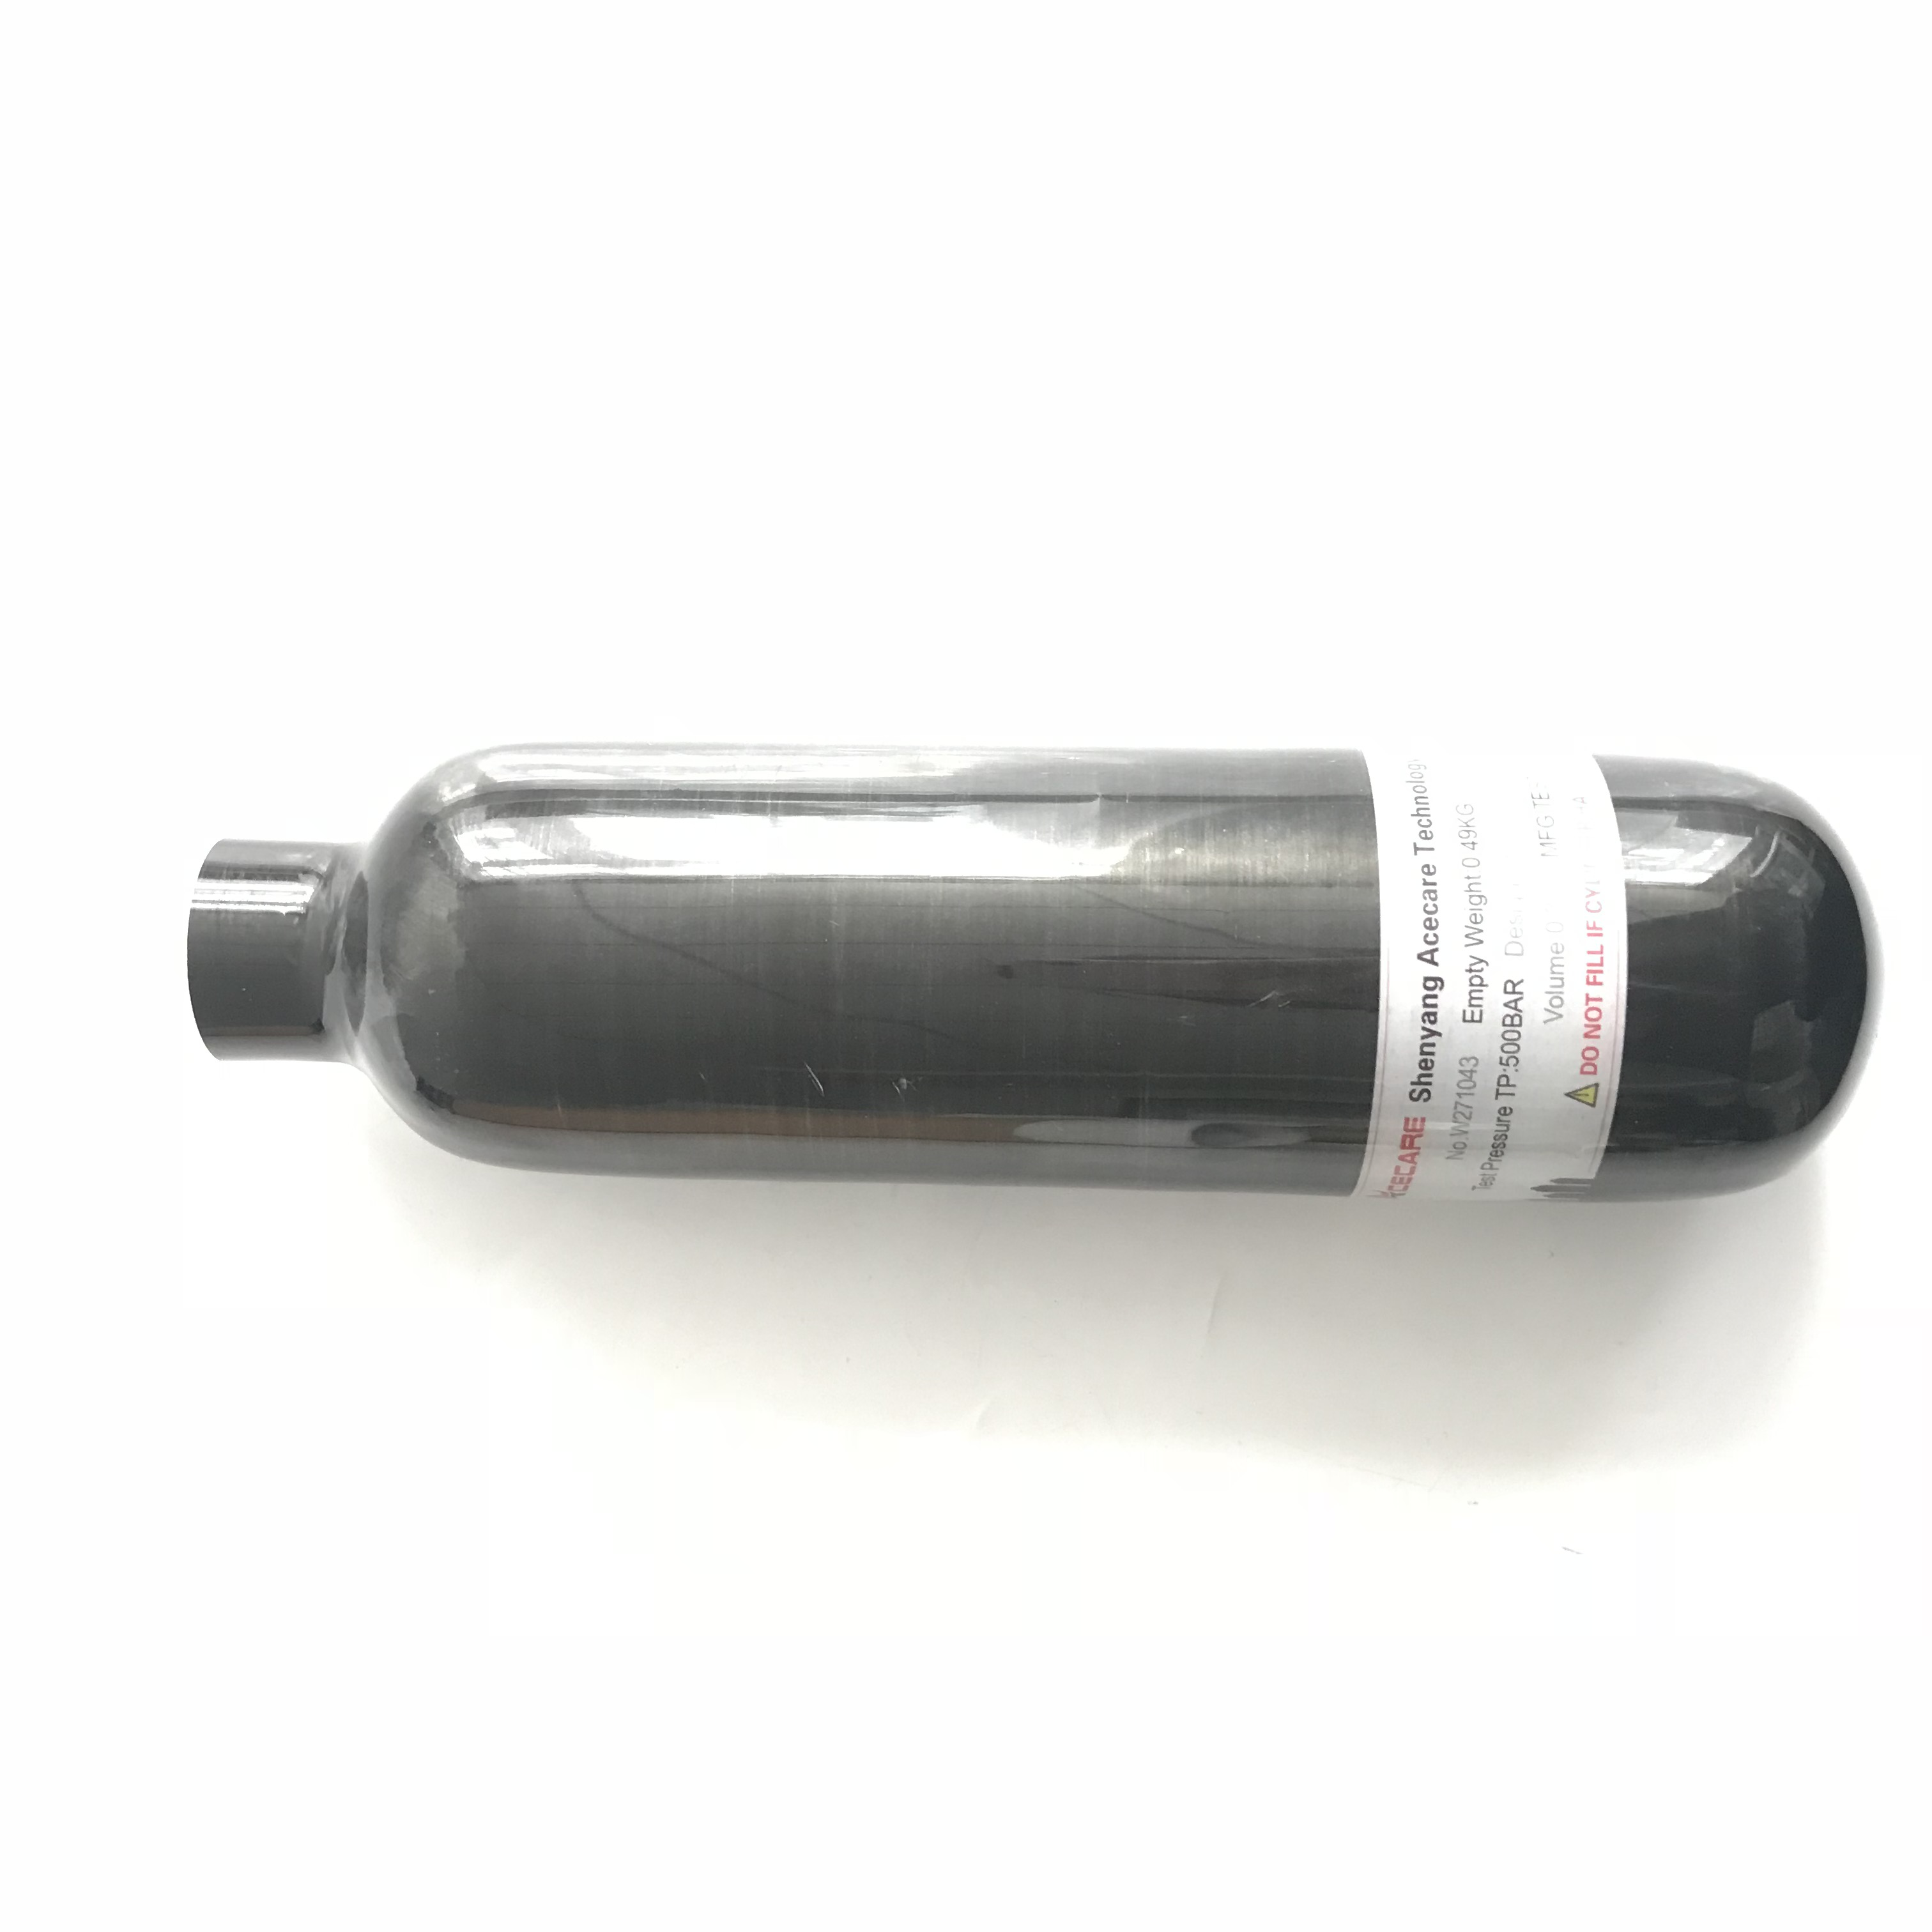 AC3035 PCP Airsoft Refill Composited Aluminum Liner Carbon Fiber NEW 4500PSI 0.35L Mini Paintball Tank  Drop Shipping